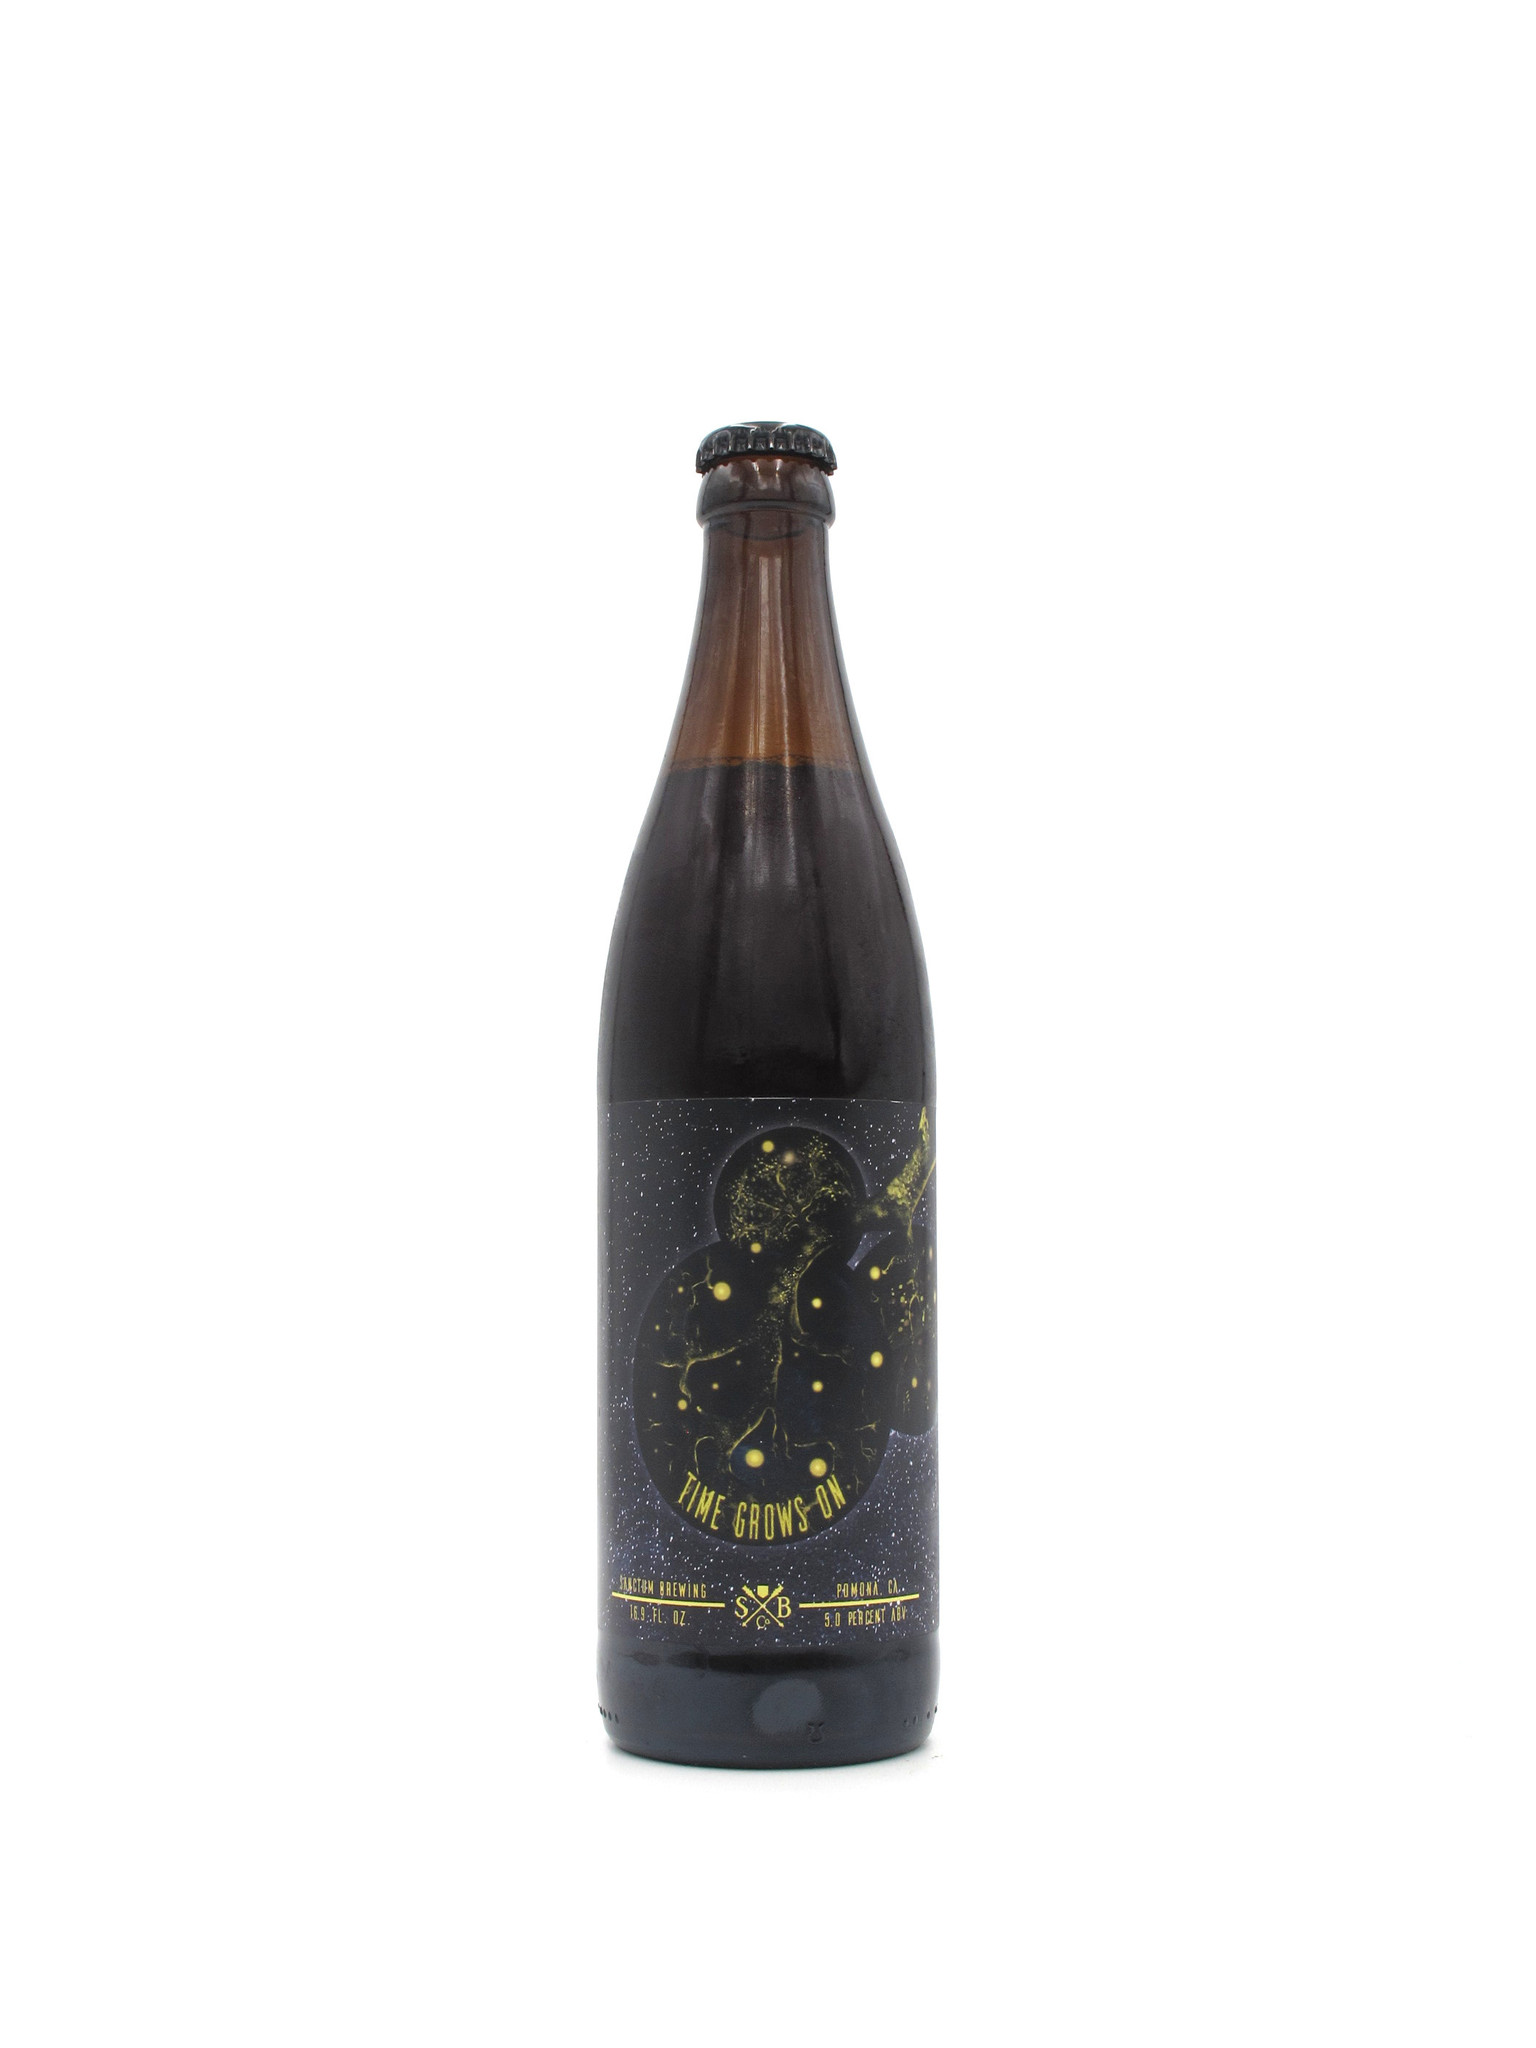 Sanctum Brewing Co. Sanctum Brewing 'Time Grows On' 500ml